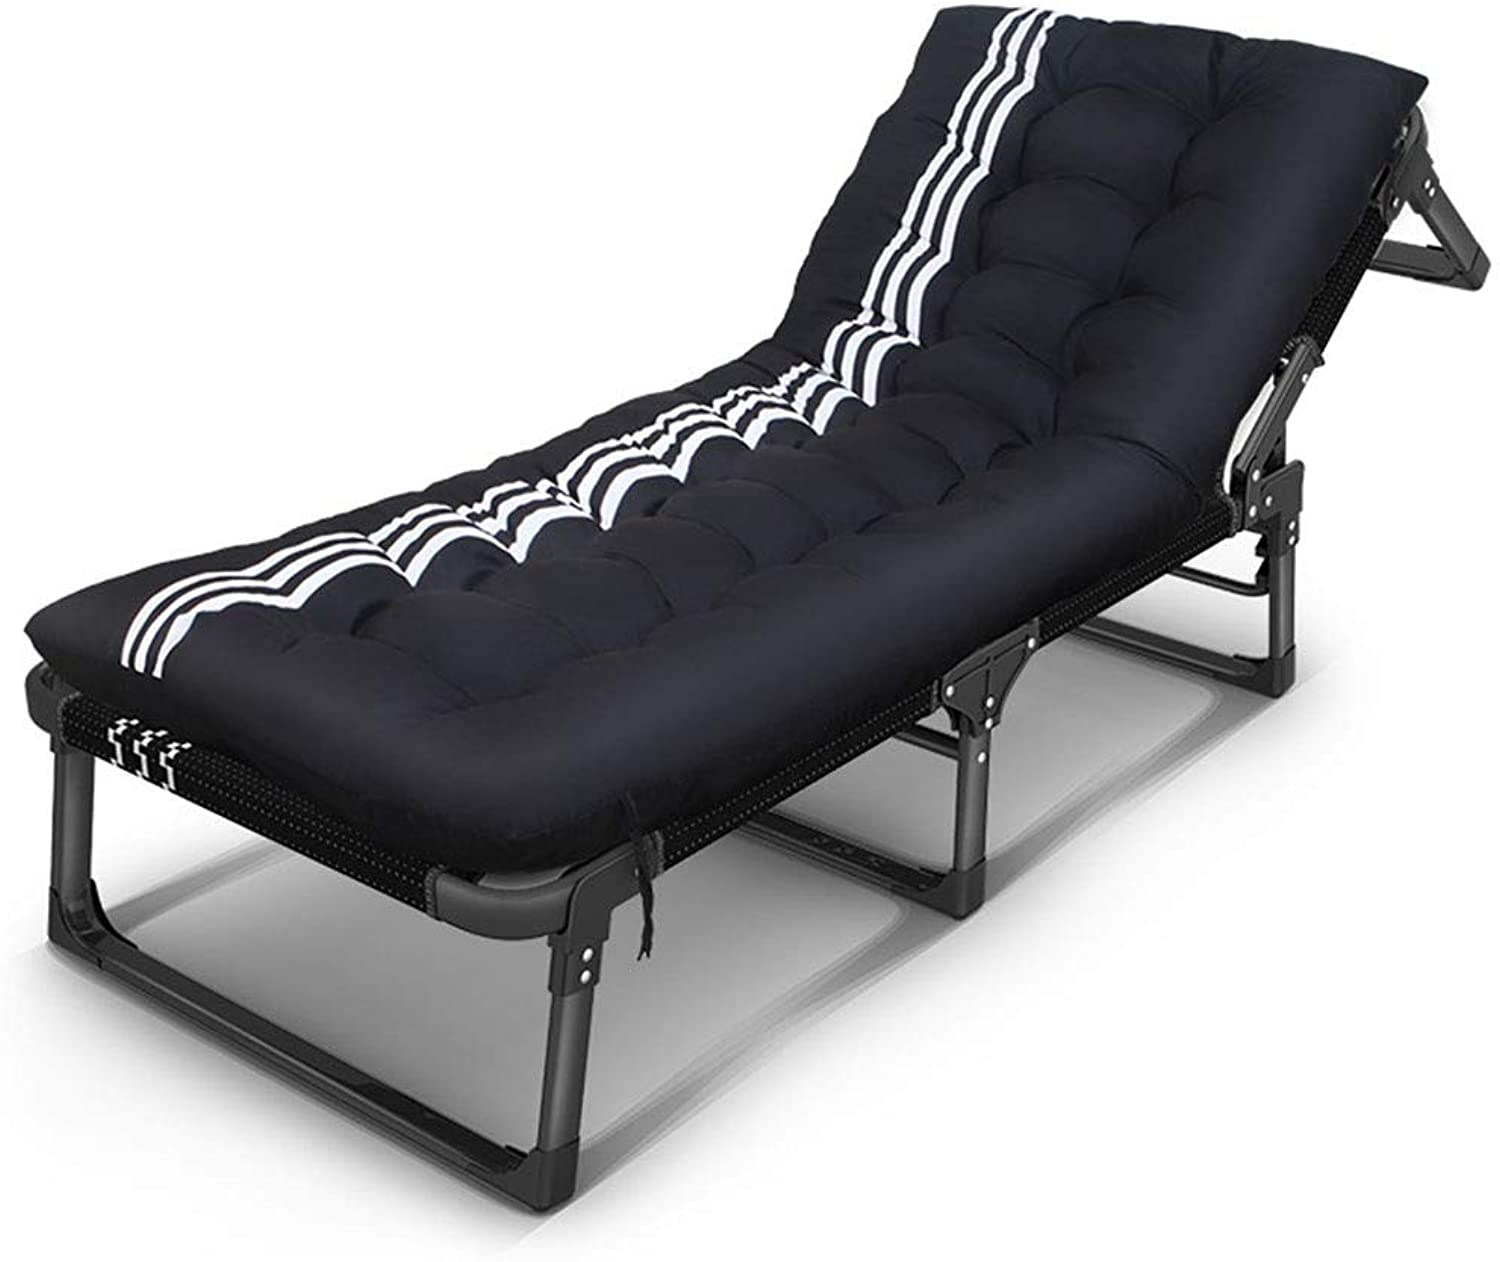 Household Single Folding Bed Portable Garden Lounge Chair Black and White Stripes Deck Chair Beach Bed Outdoor Sun Lounger Load of About 150kg L185×W68×H28cm GW